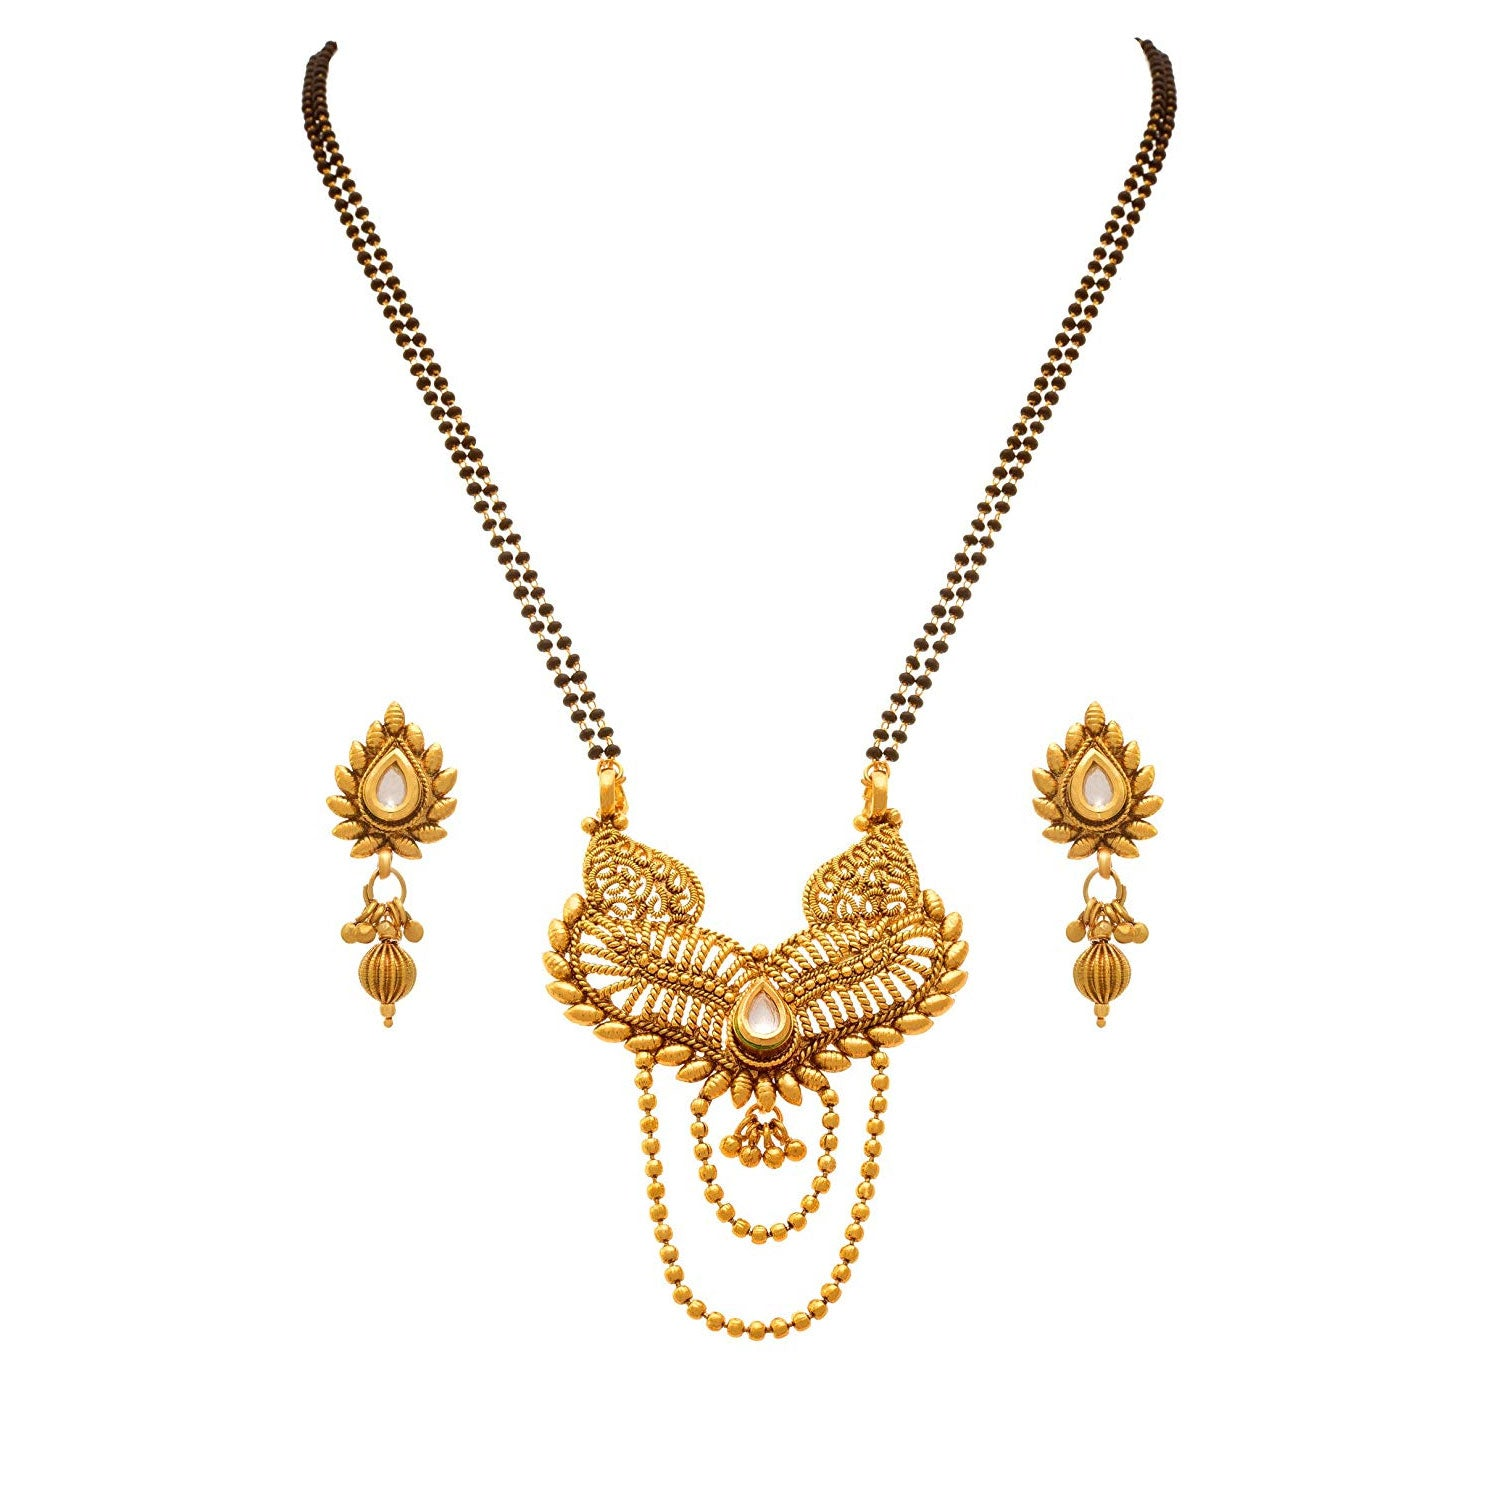 JFL - Kundan One Gram Gold Plated Mangalsutra With Earrings For Women